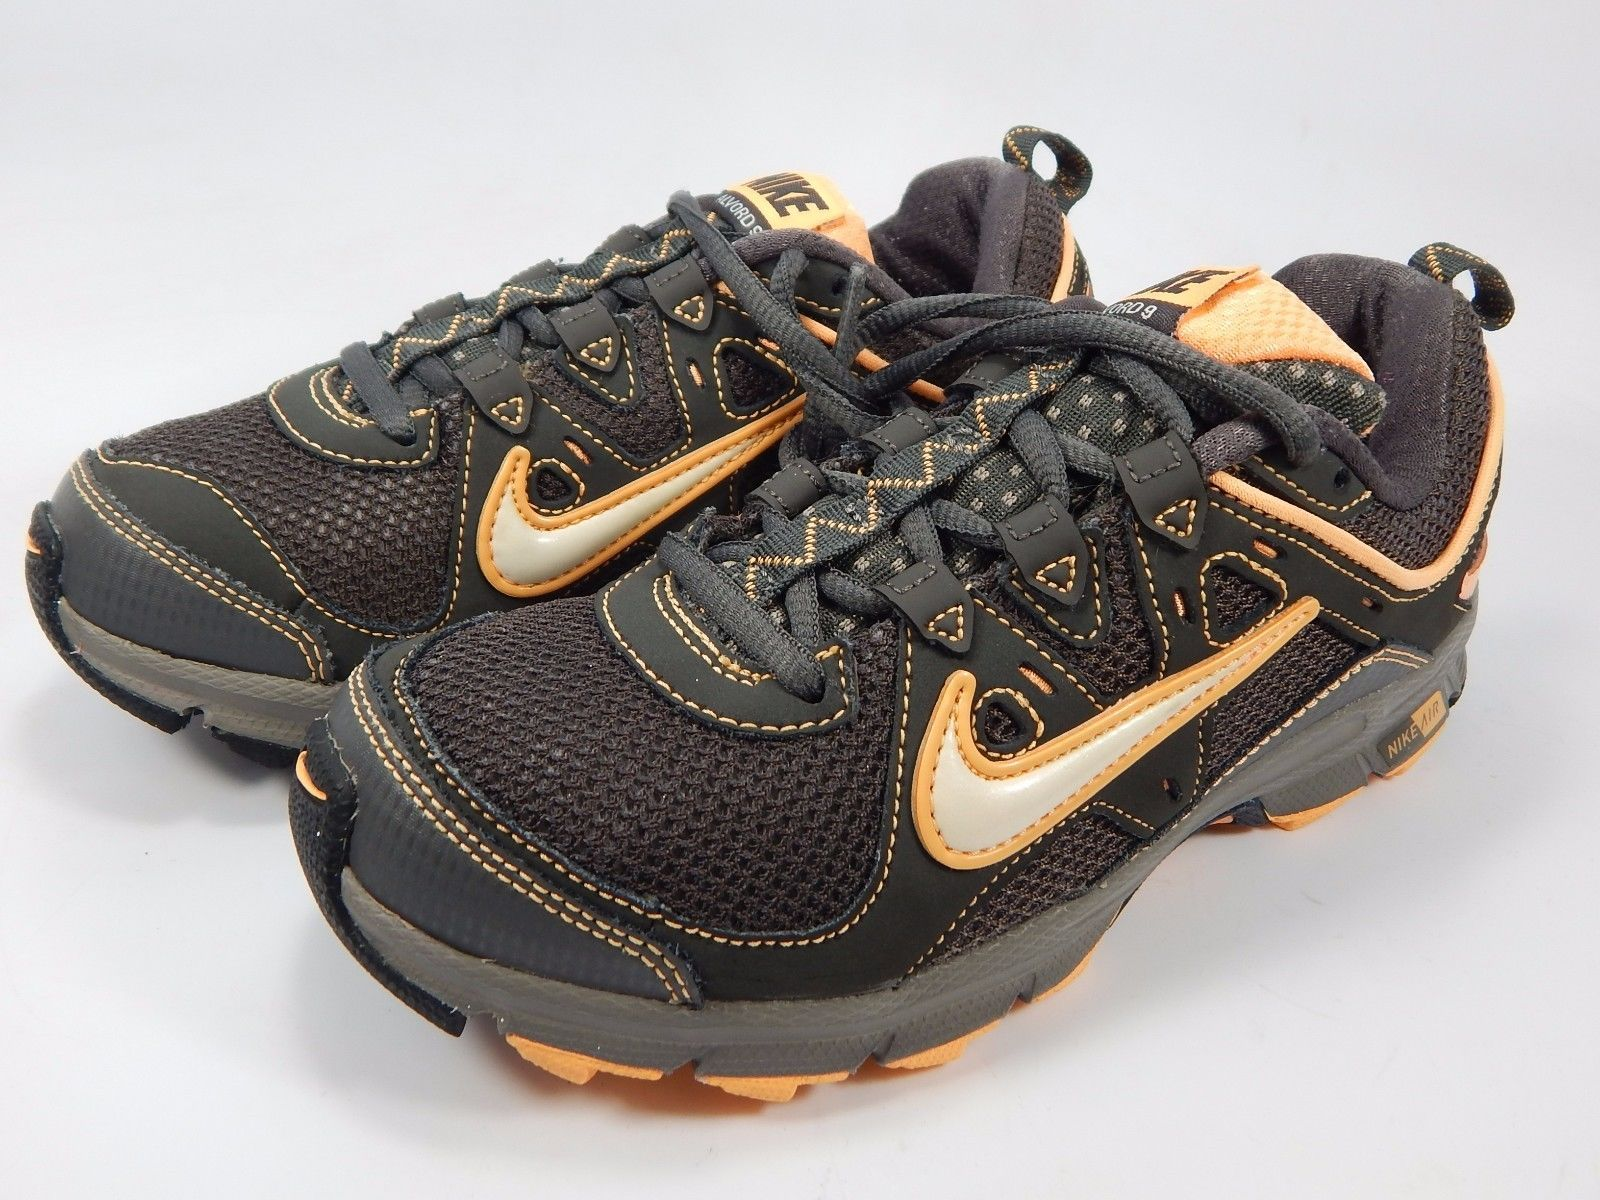 Nike Air Alvord 9 Women's Trail Running Shoes Size US 6 M (B) EU 36.5 443847-002